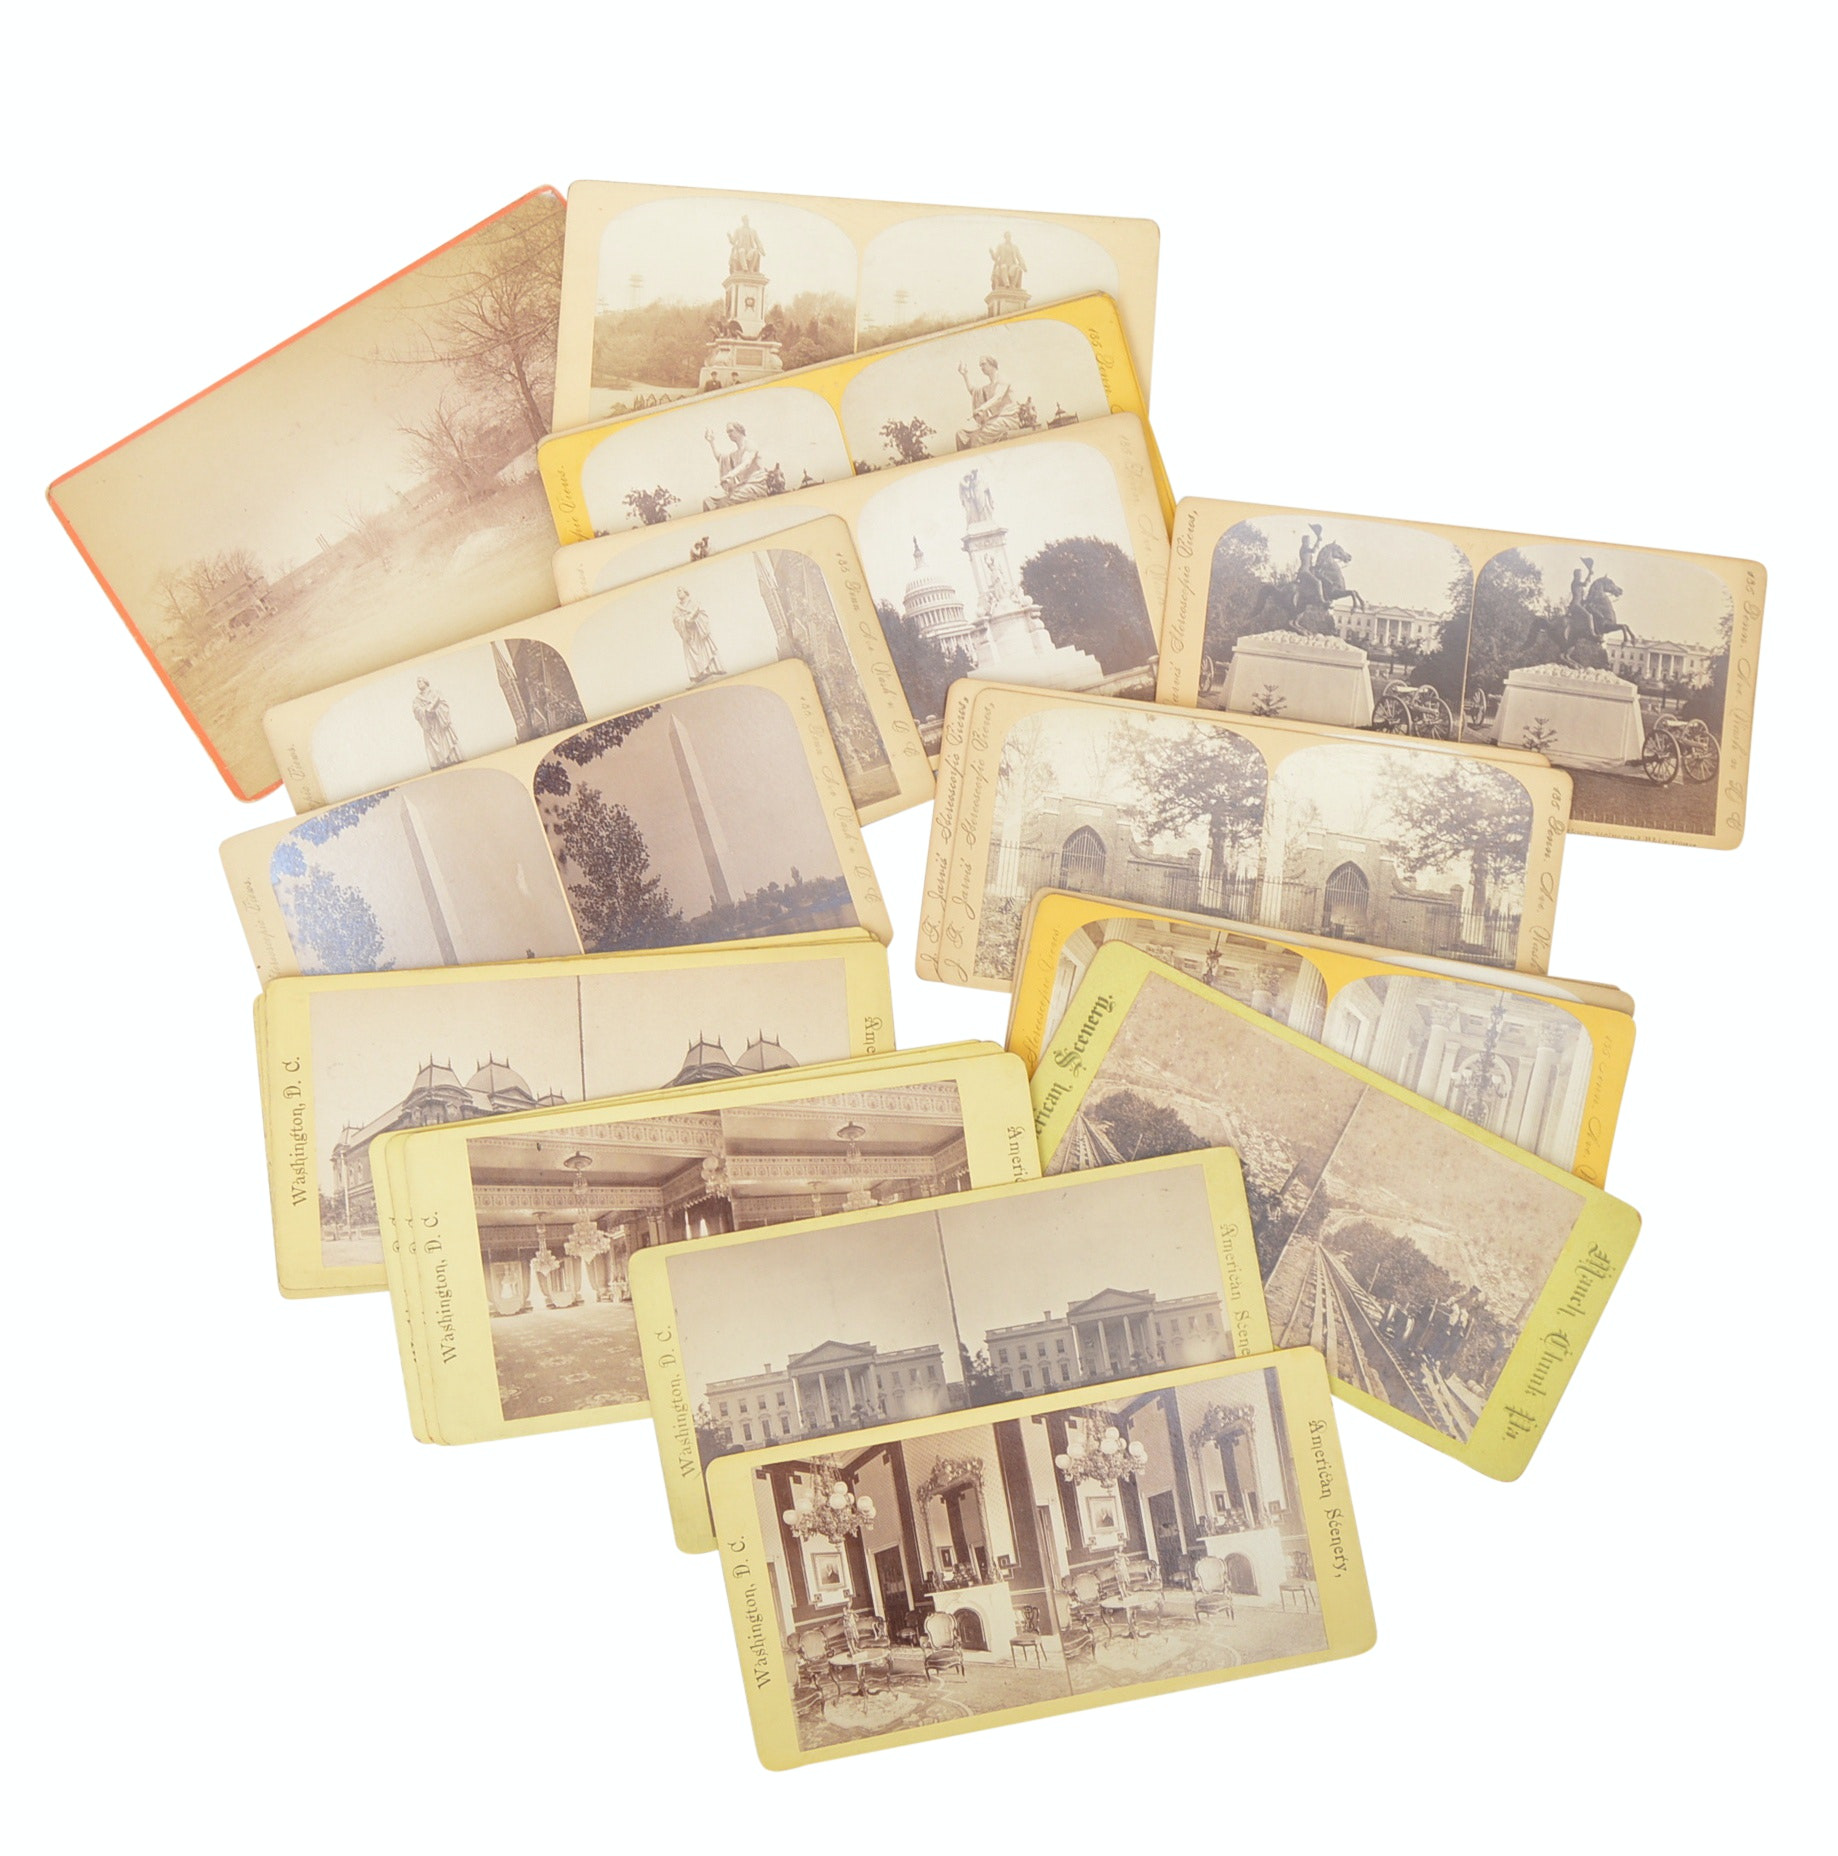 24 Vintage Stereoscopic Cards with Washington D.C. and White House